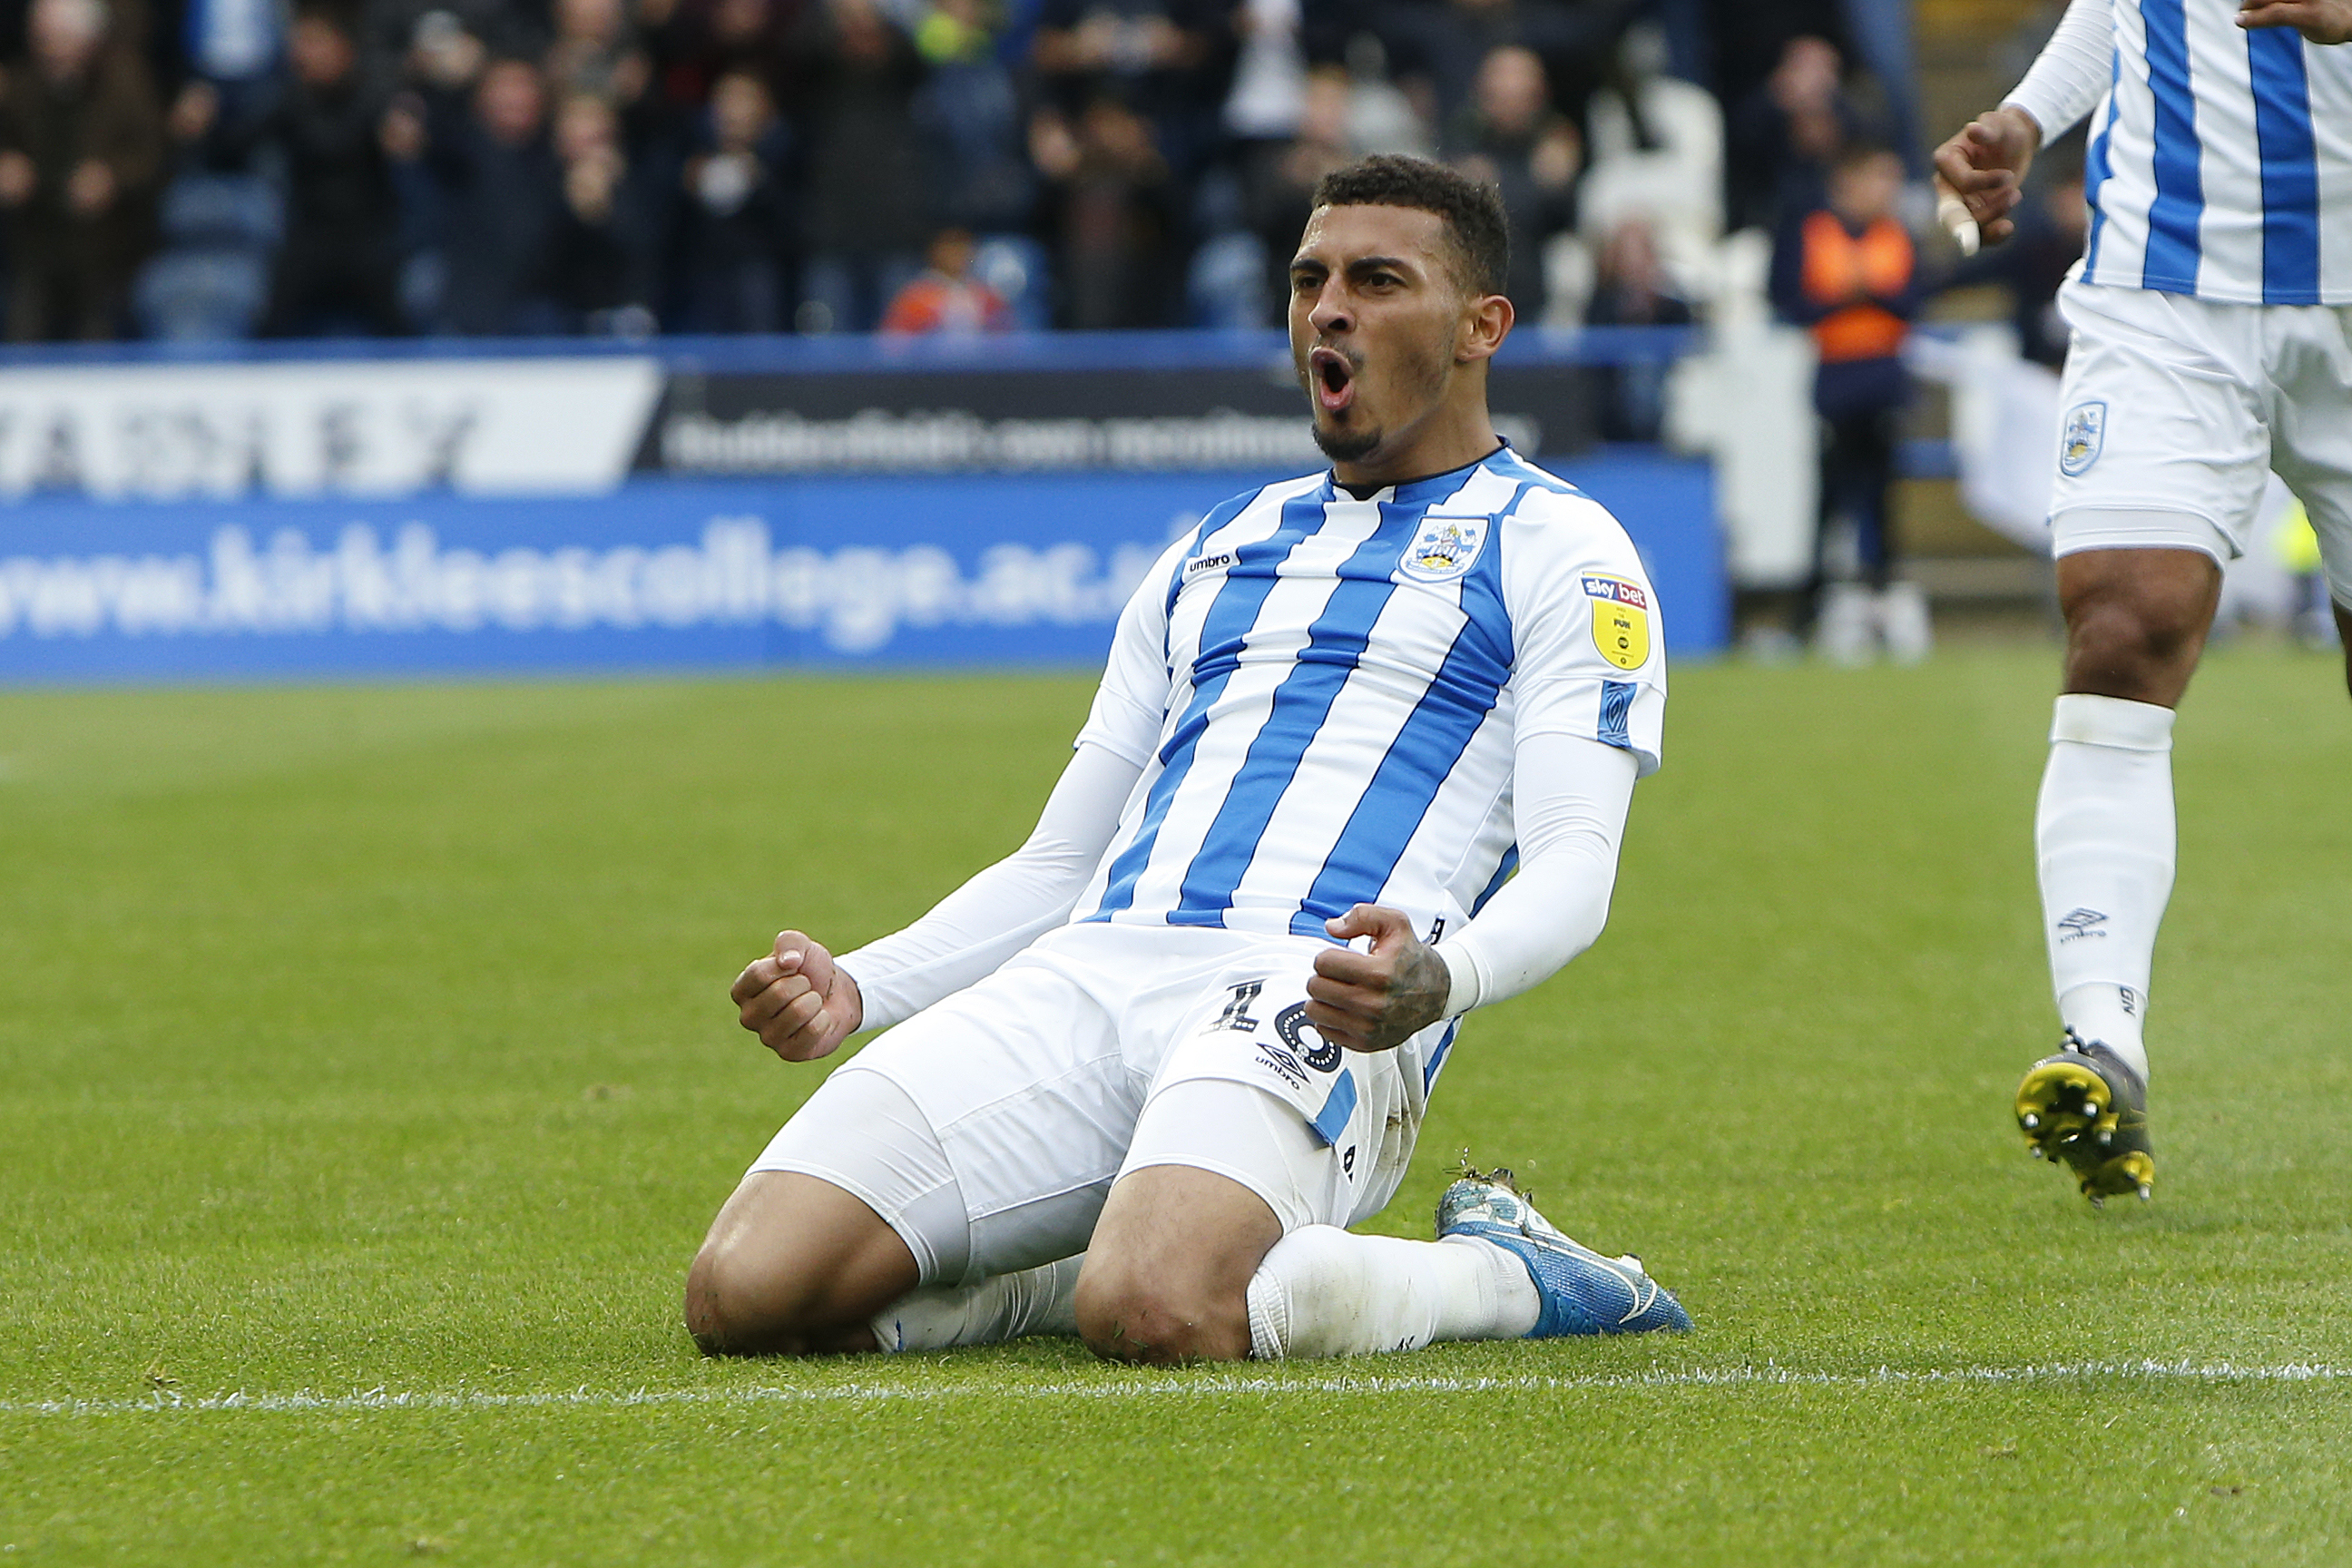 """The kid causes problems and scores goals"""" - in praise of Huddersfield's Karlan Grant - The Totally Football Show"""